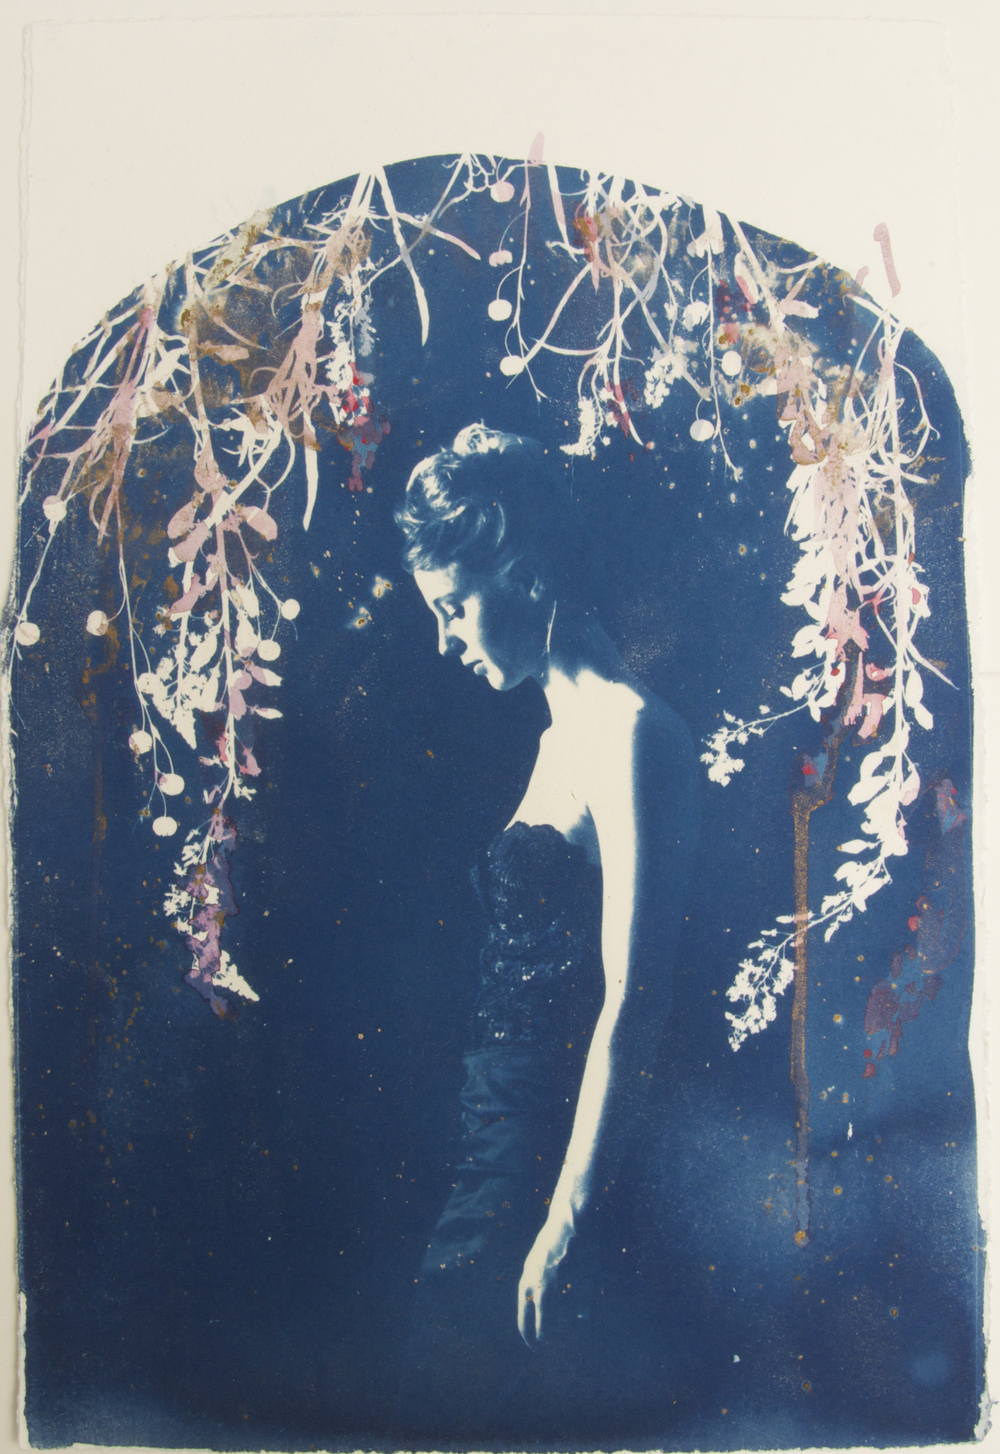 Lyra - Ed. 3 of 6 Hand painted Cyanotype on Somerset Satin Paper Artwork: 37 x 22 cm (34 x 48 cm framed) 2015